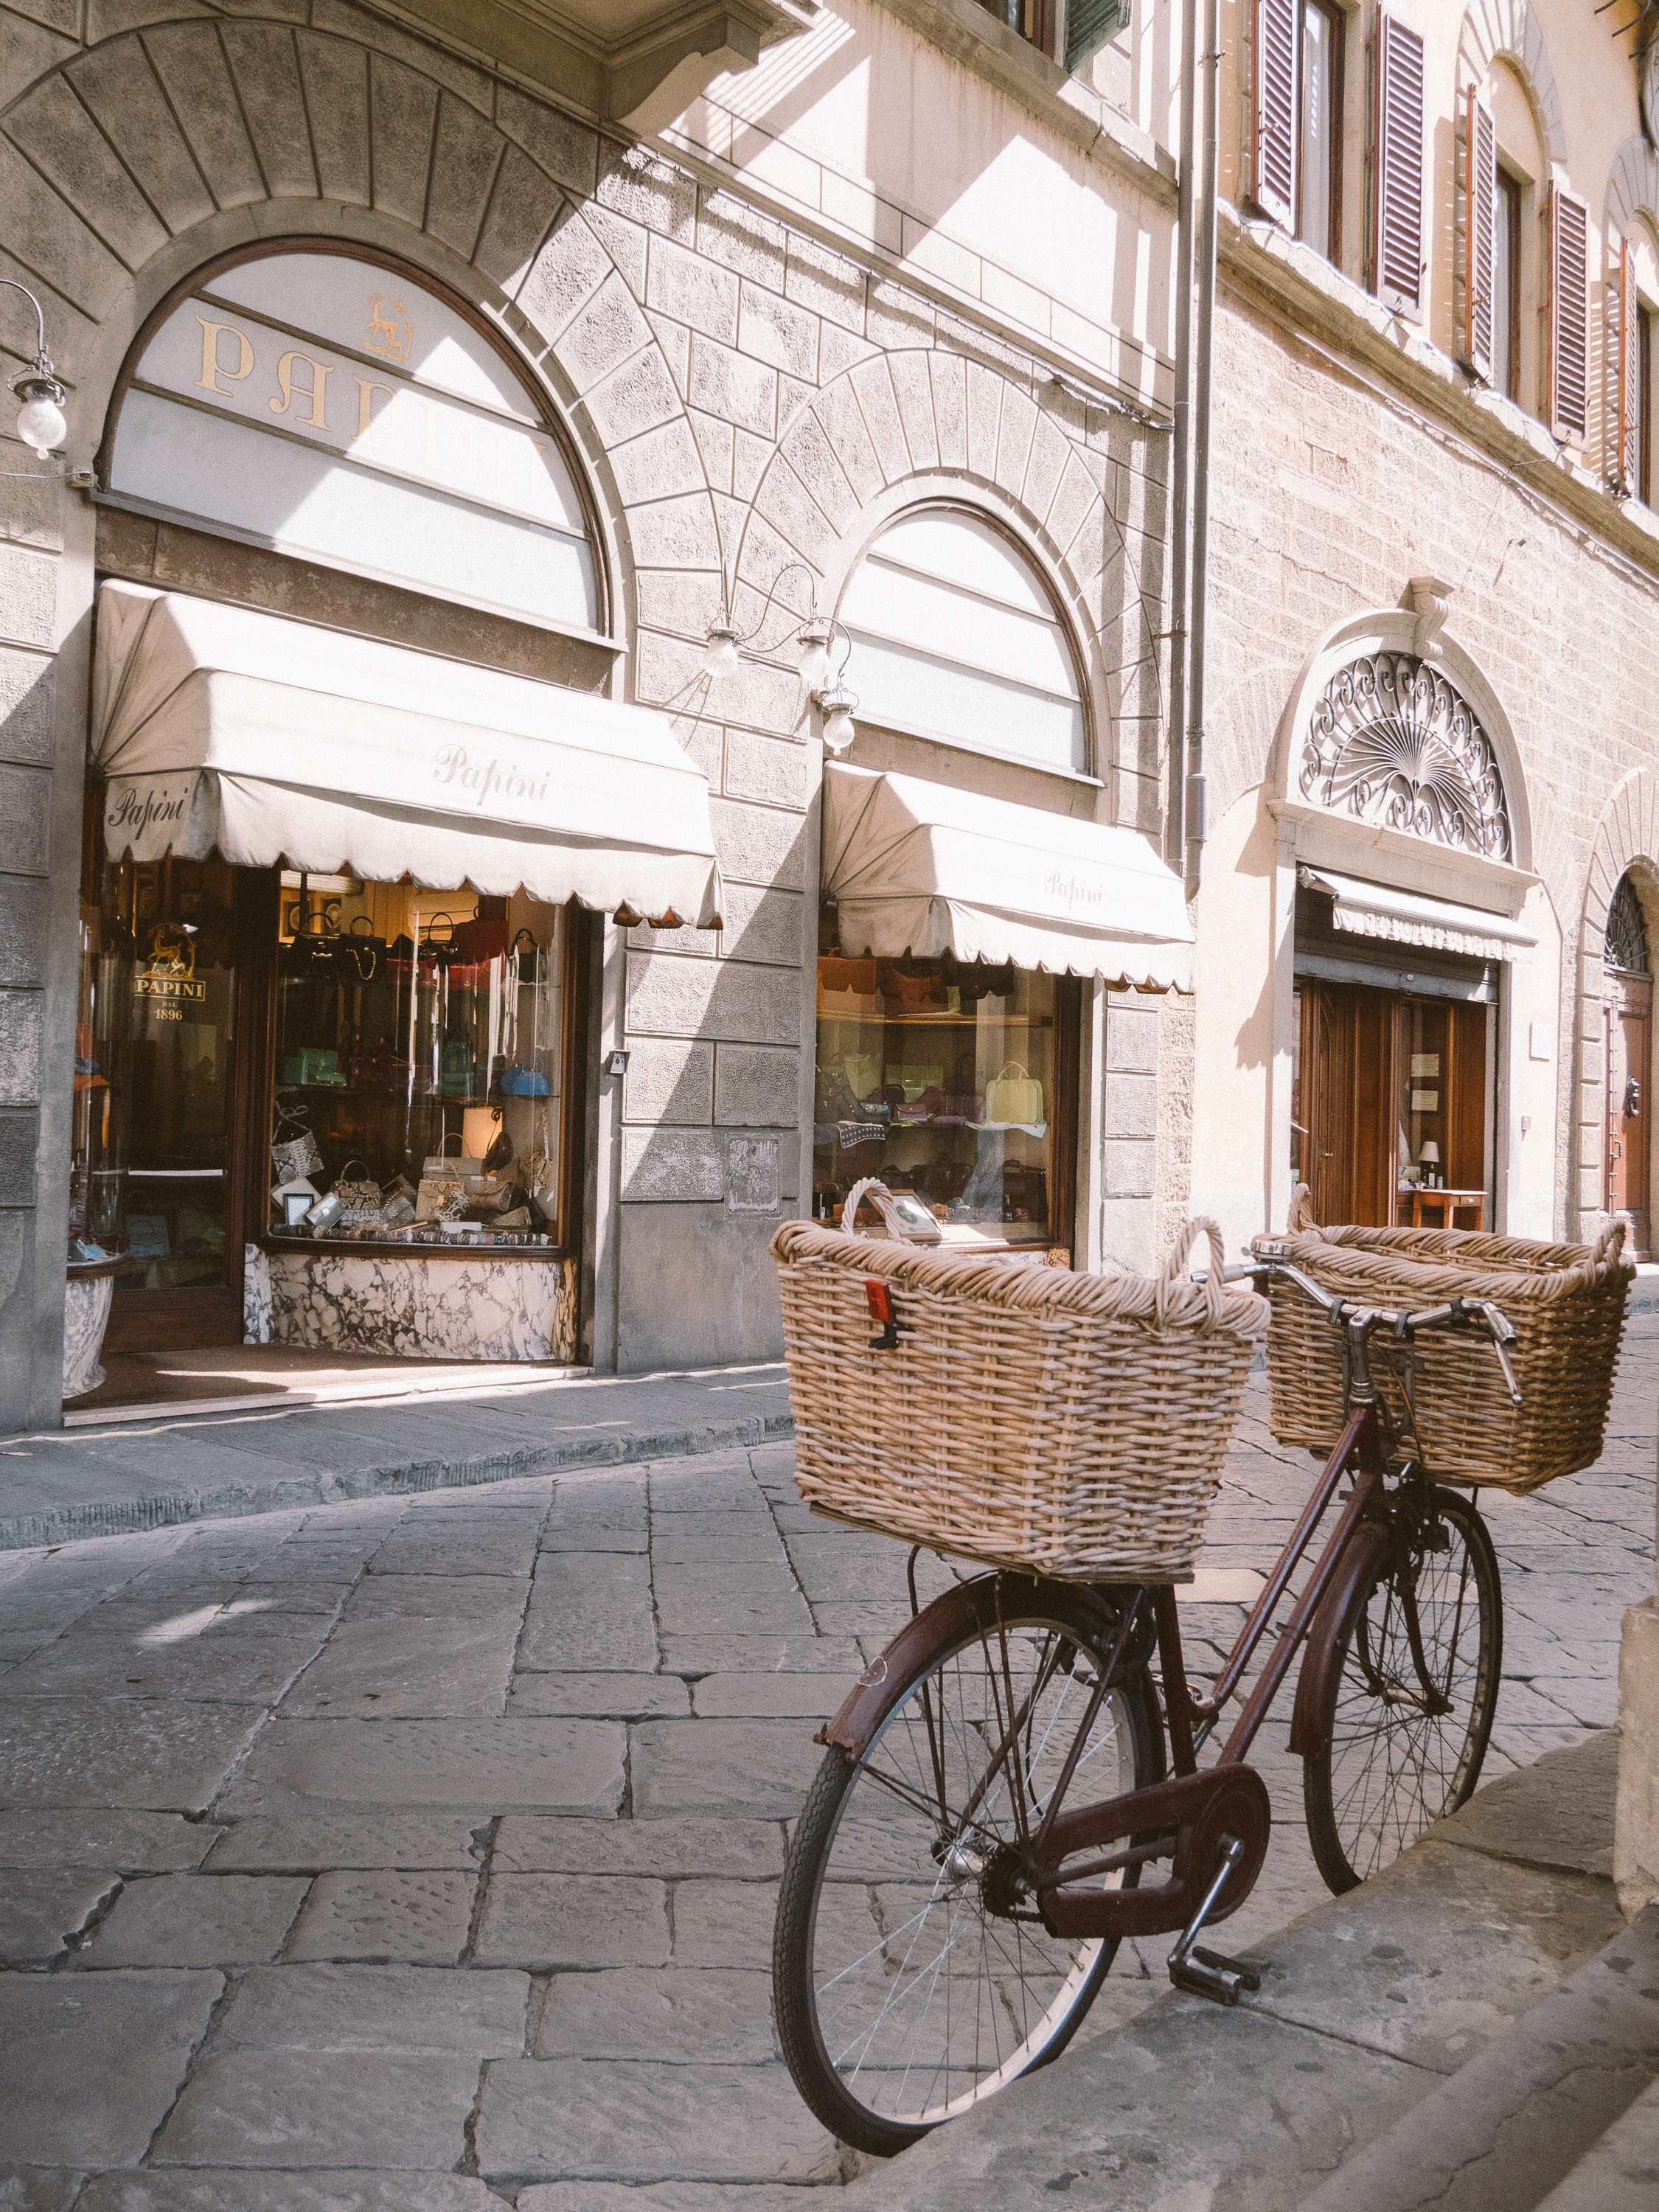 fat_creative_travel_blog_3_things_you_should_know_when_visiting_florence-76.jpg